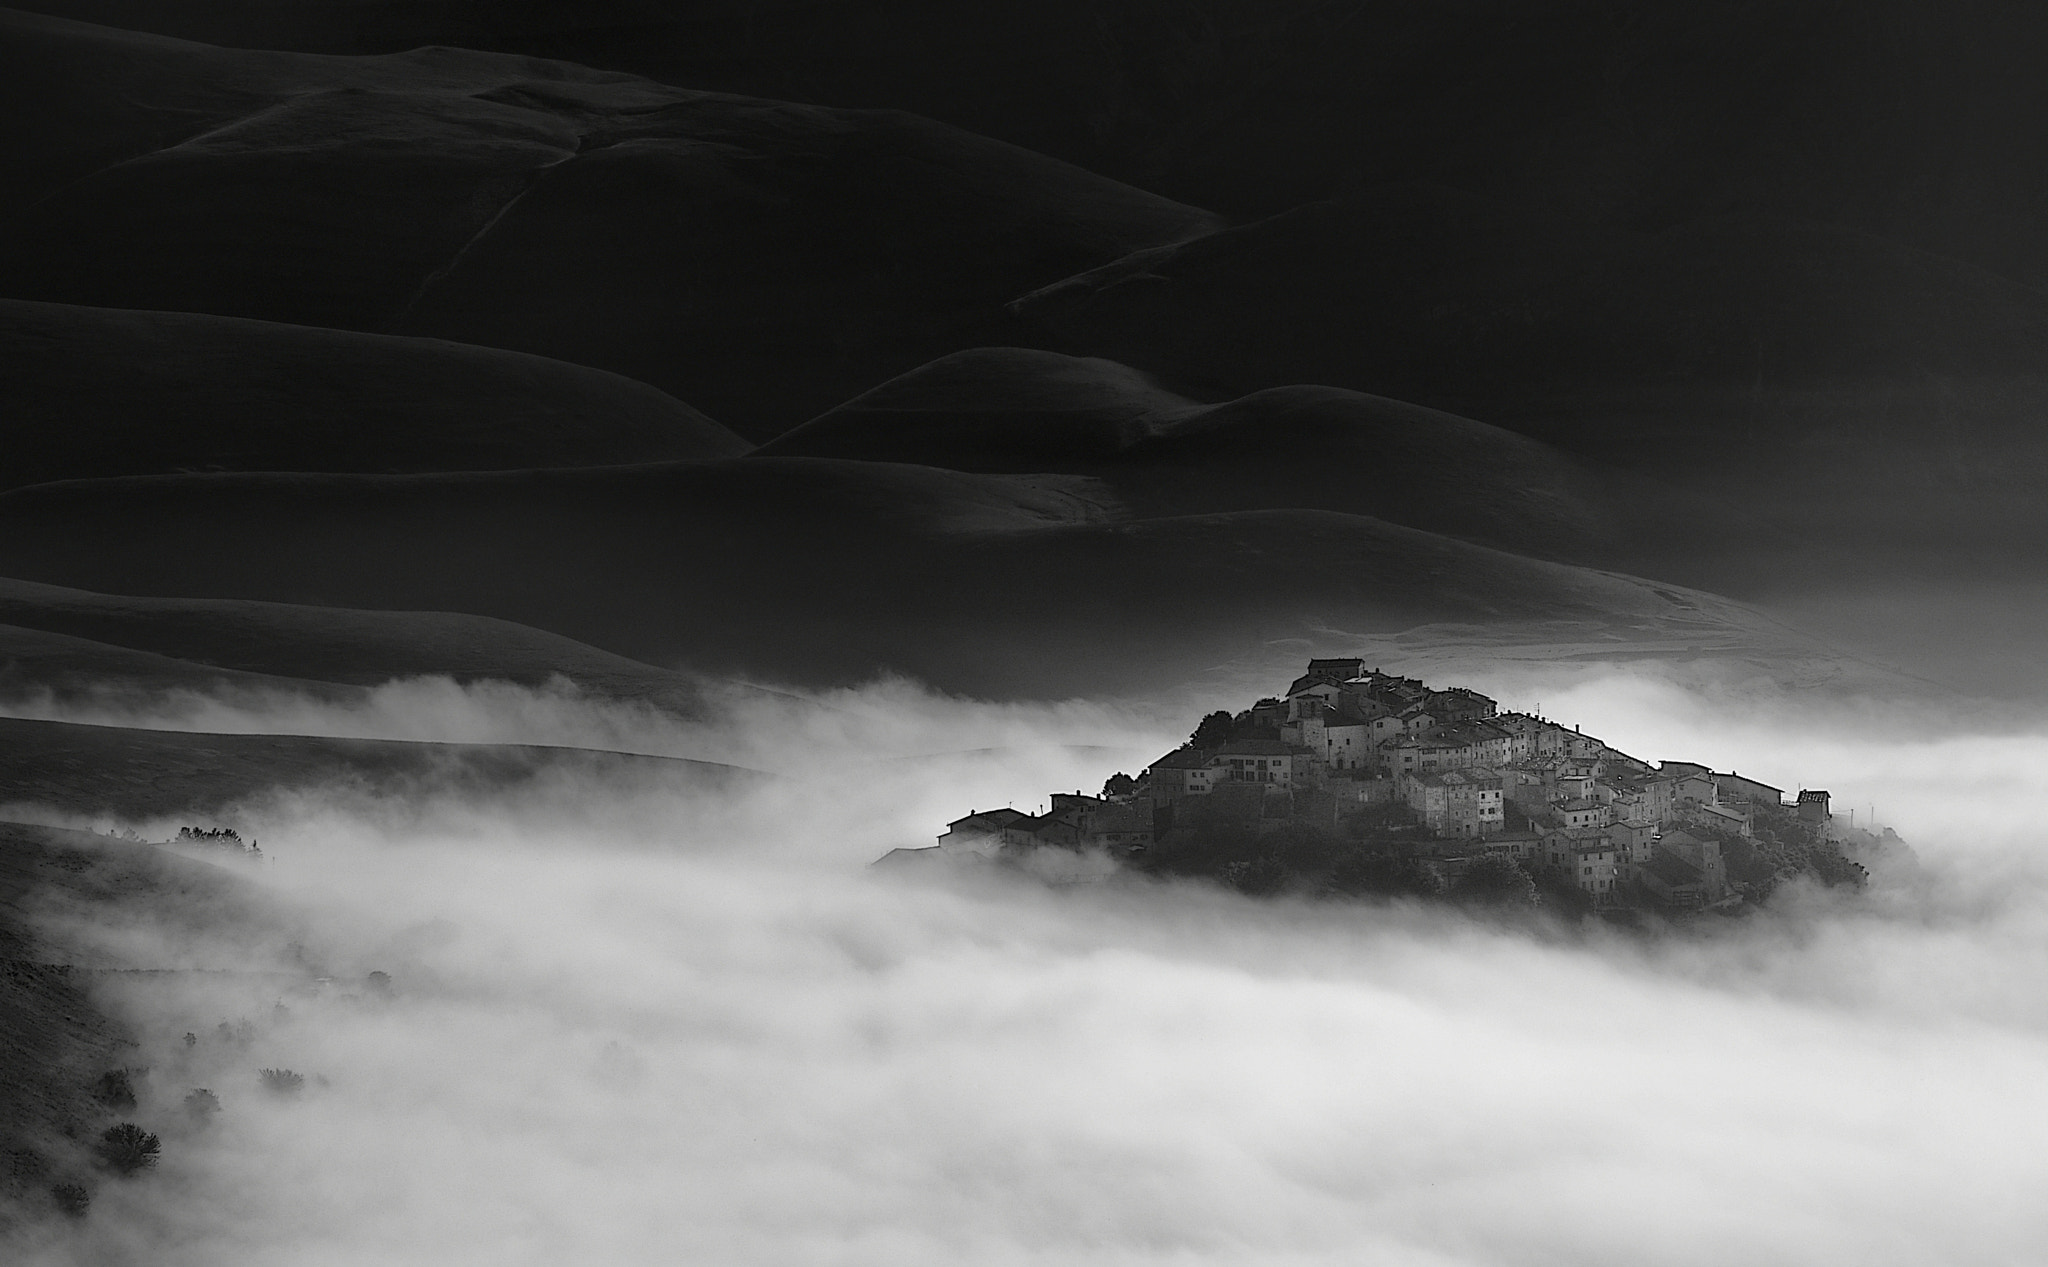 Photograph fog in the valley by mauro maione on 500px